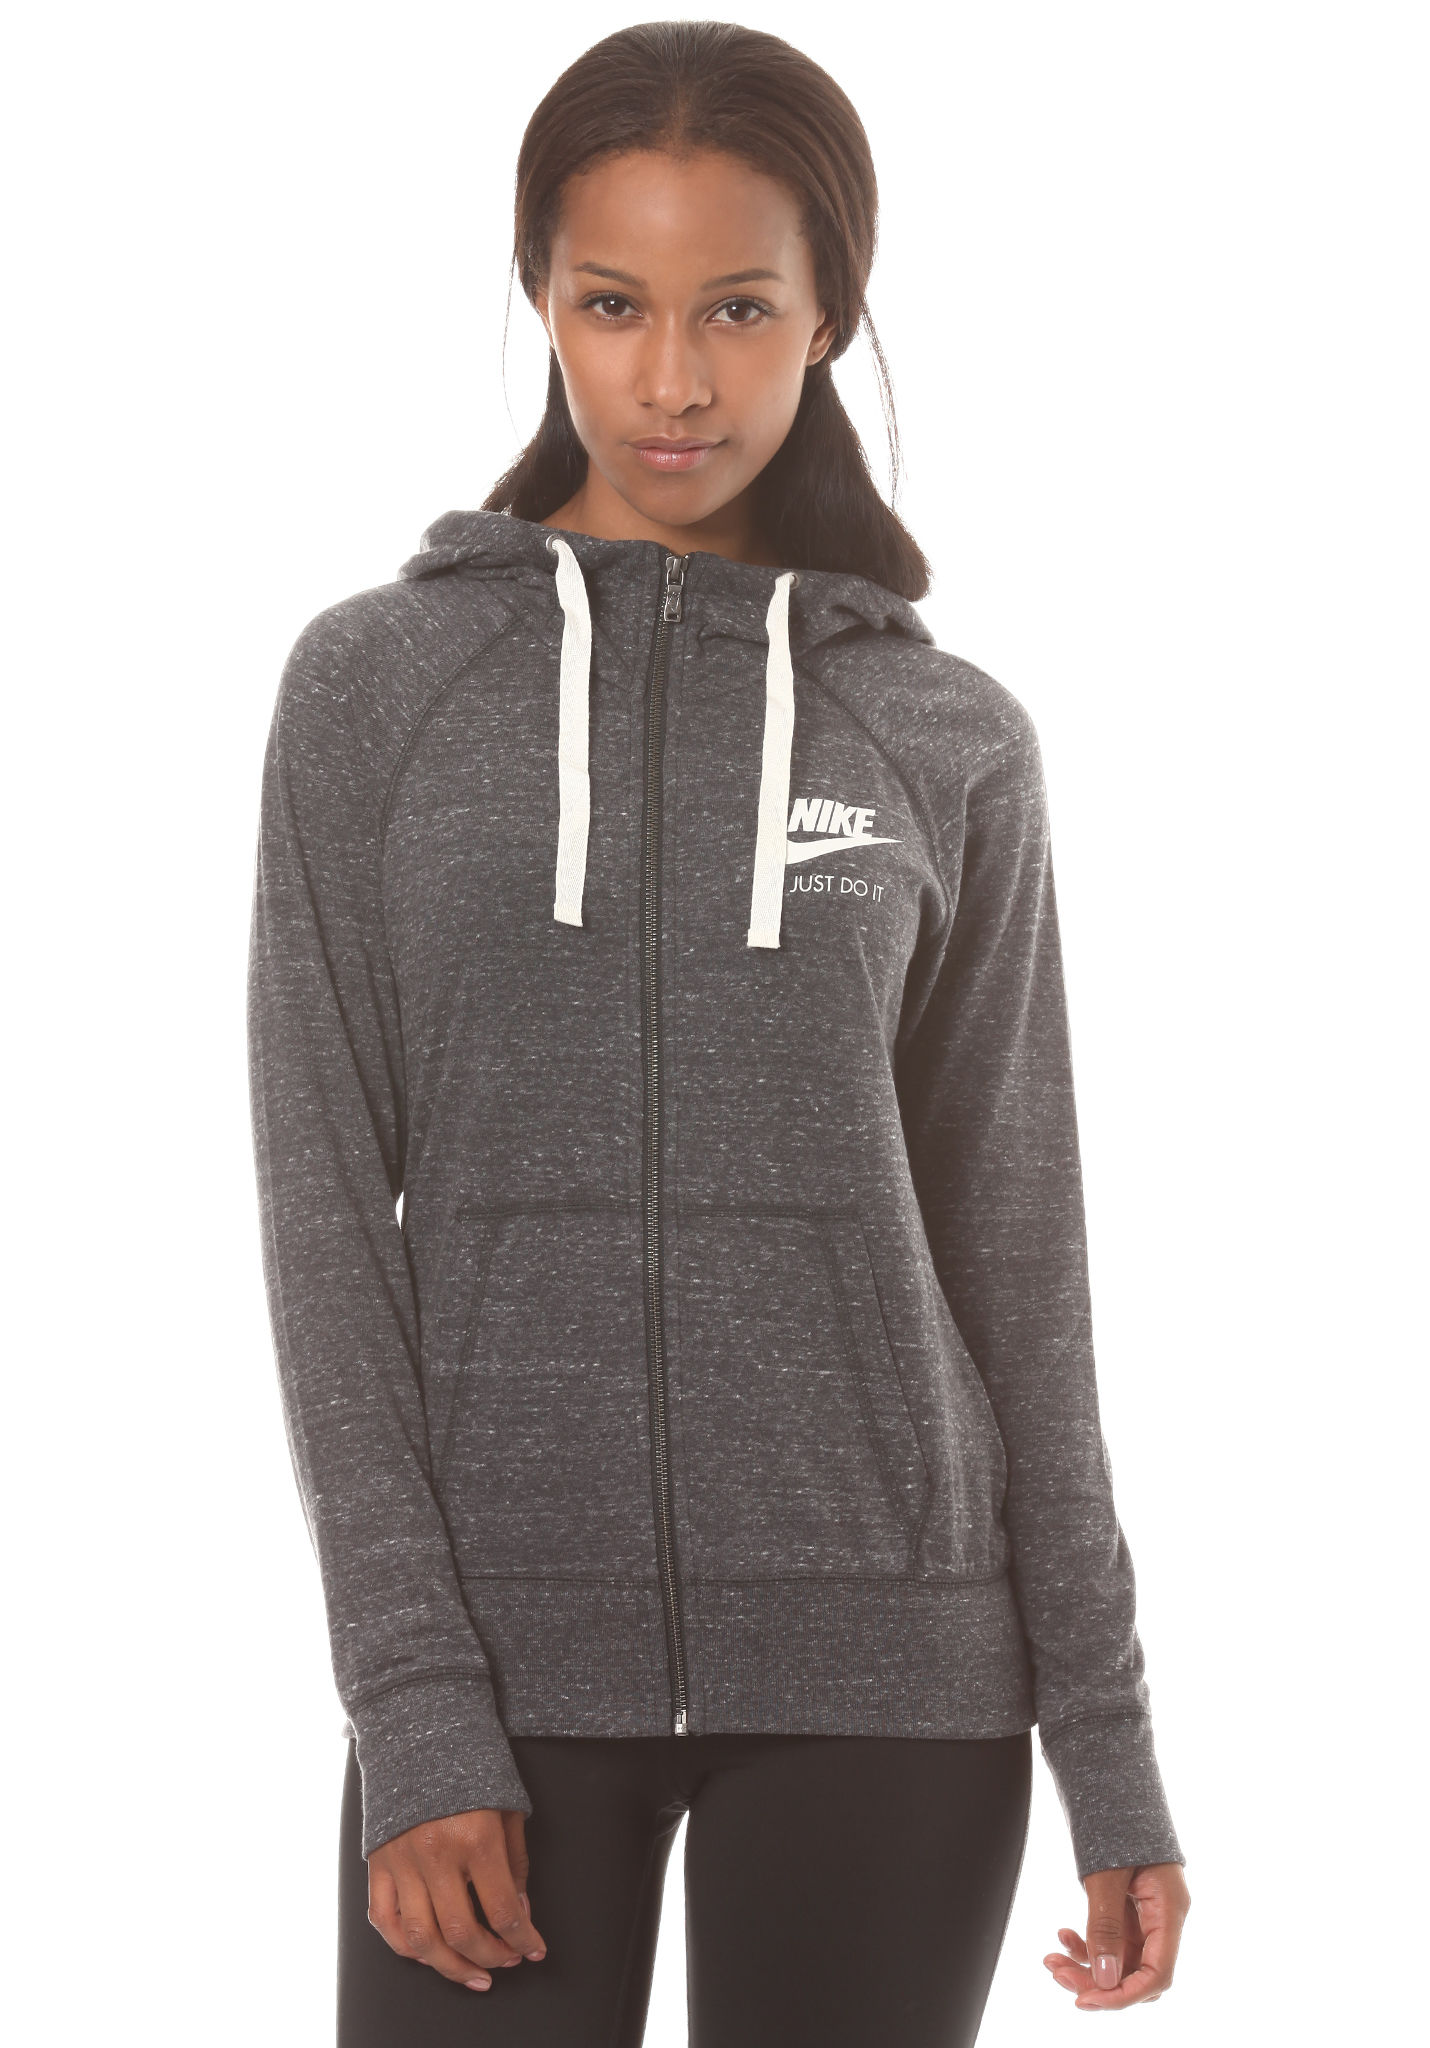 NIKE SPORTSWEAR Gym Vintage - Hooded Jacket for Women - Black - Planet  Sports 4339bb8e2cd